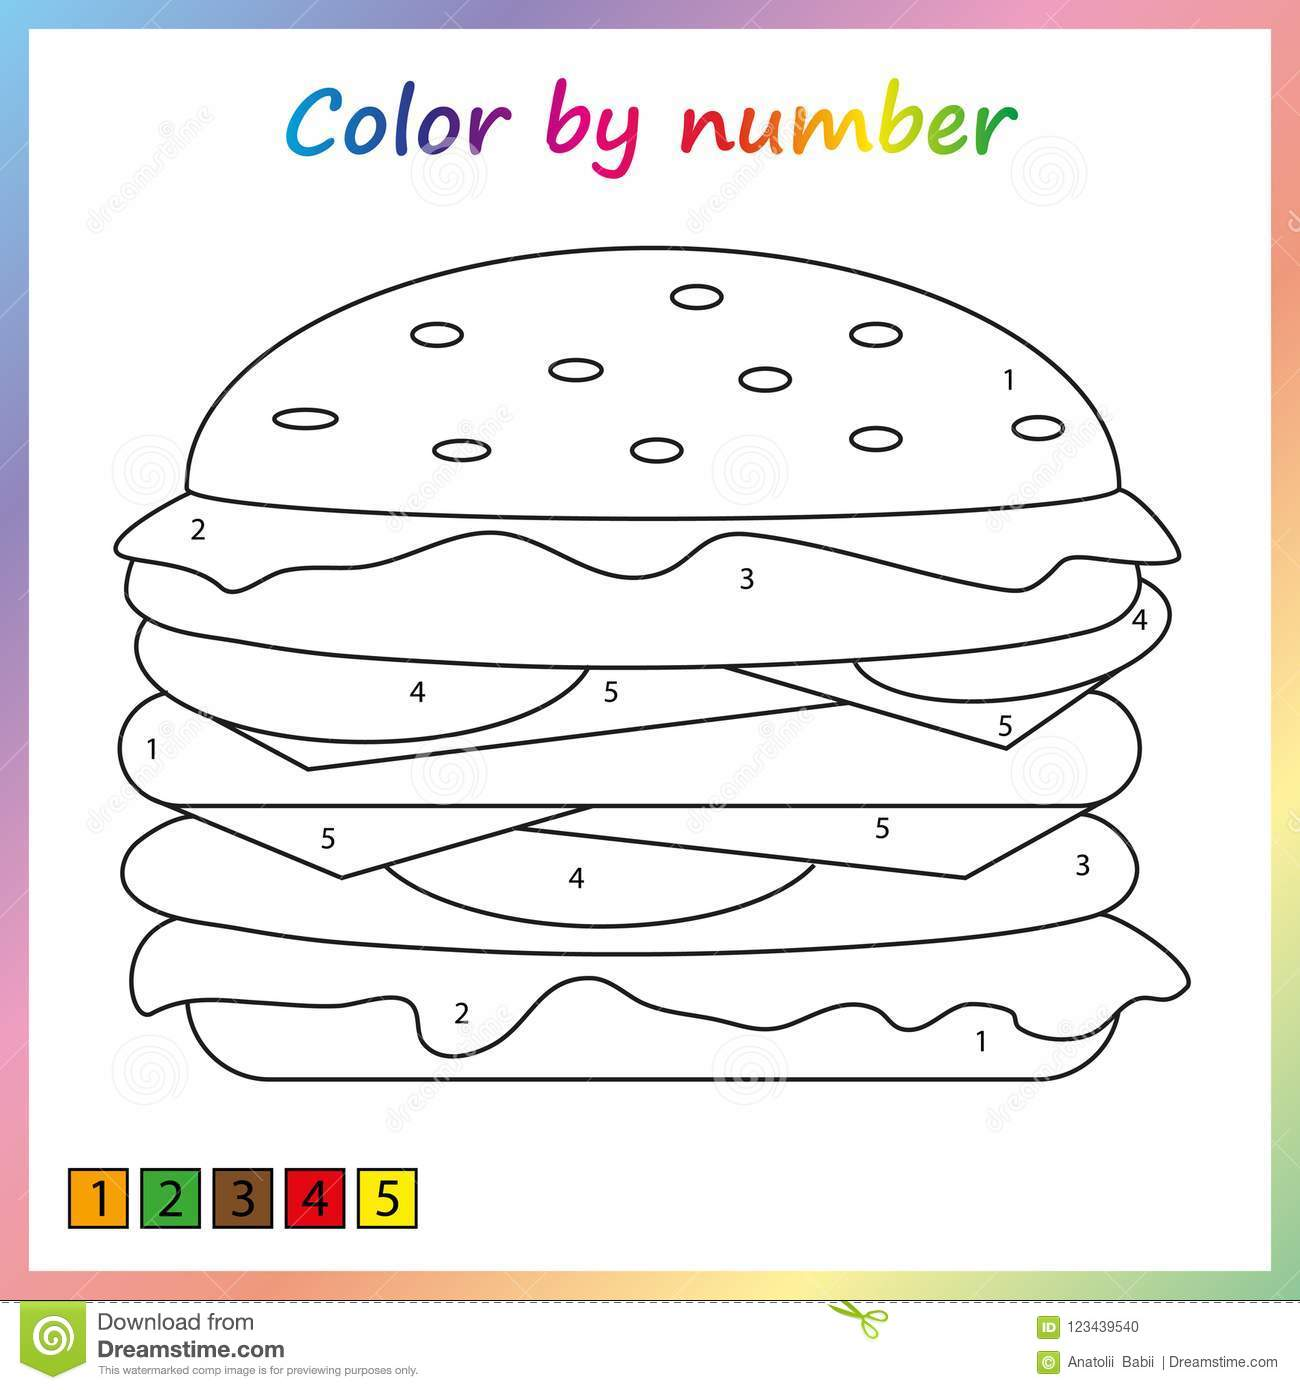 Worksheet For Education. Painting Page, Color By Numbers ...